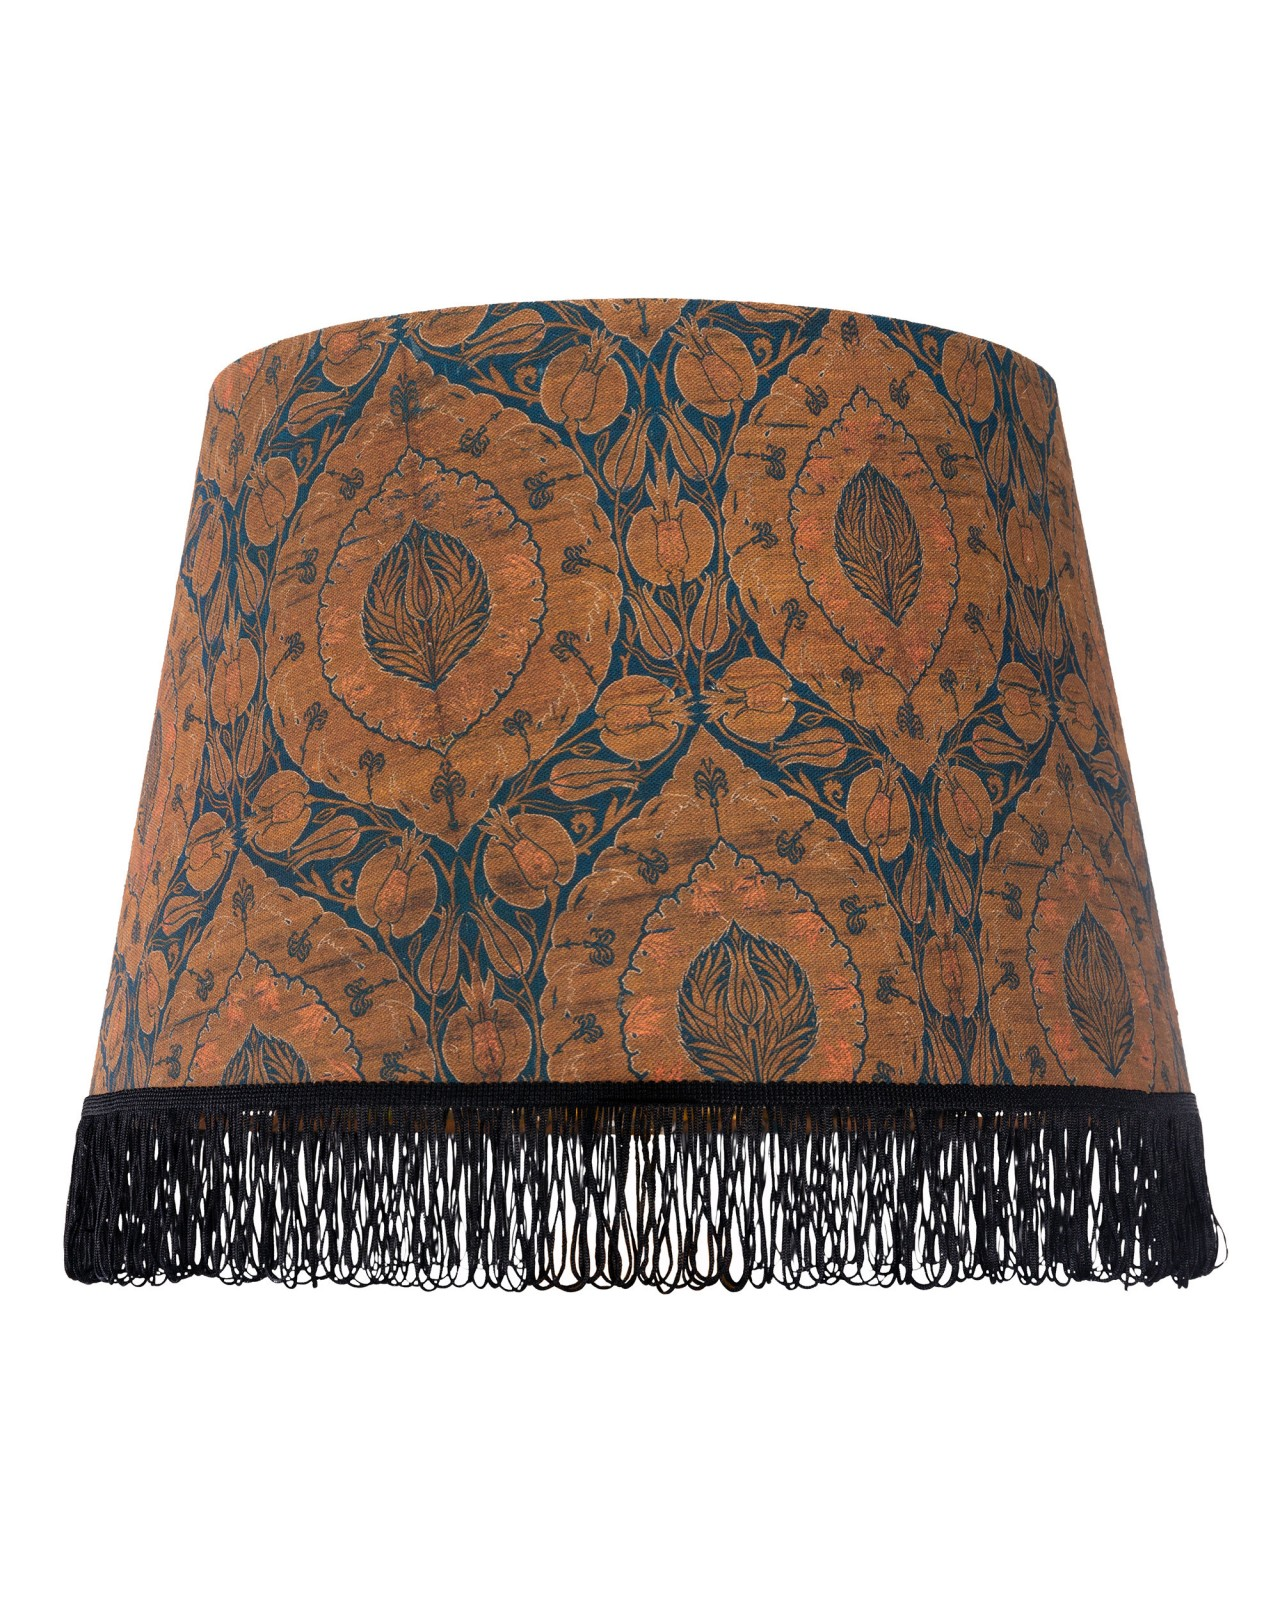 KAFTAN KALASH Table Lamp